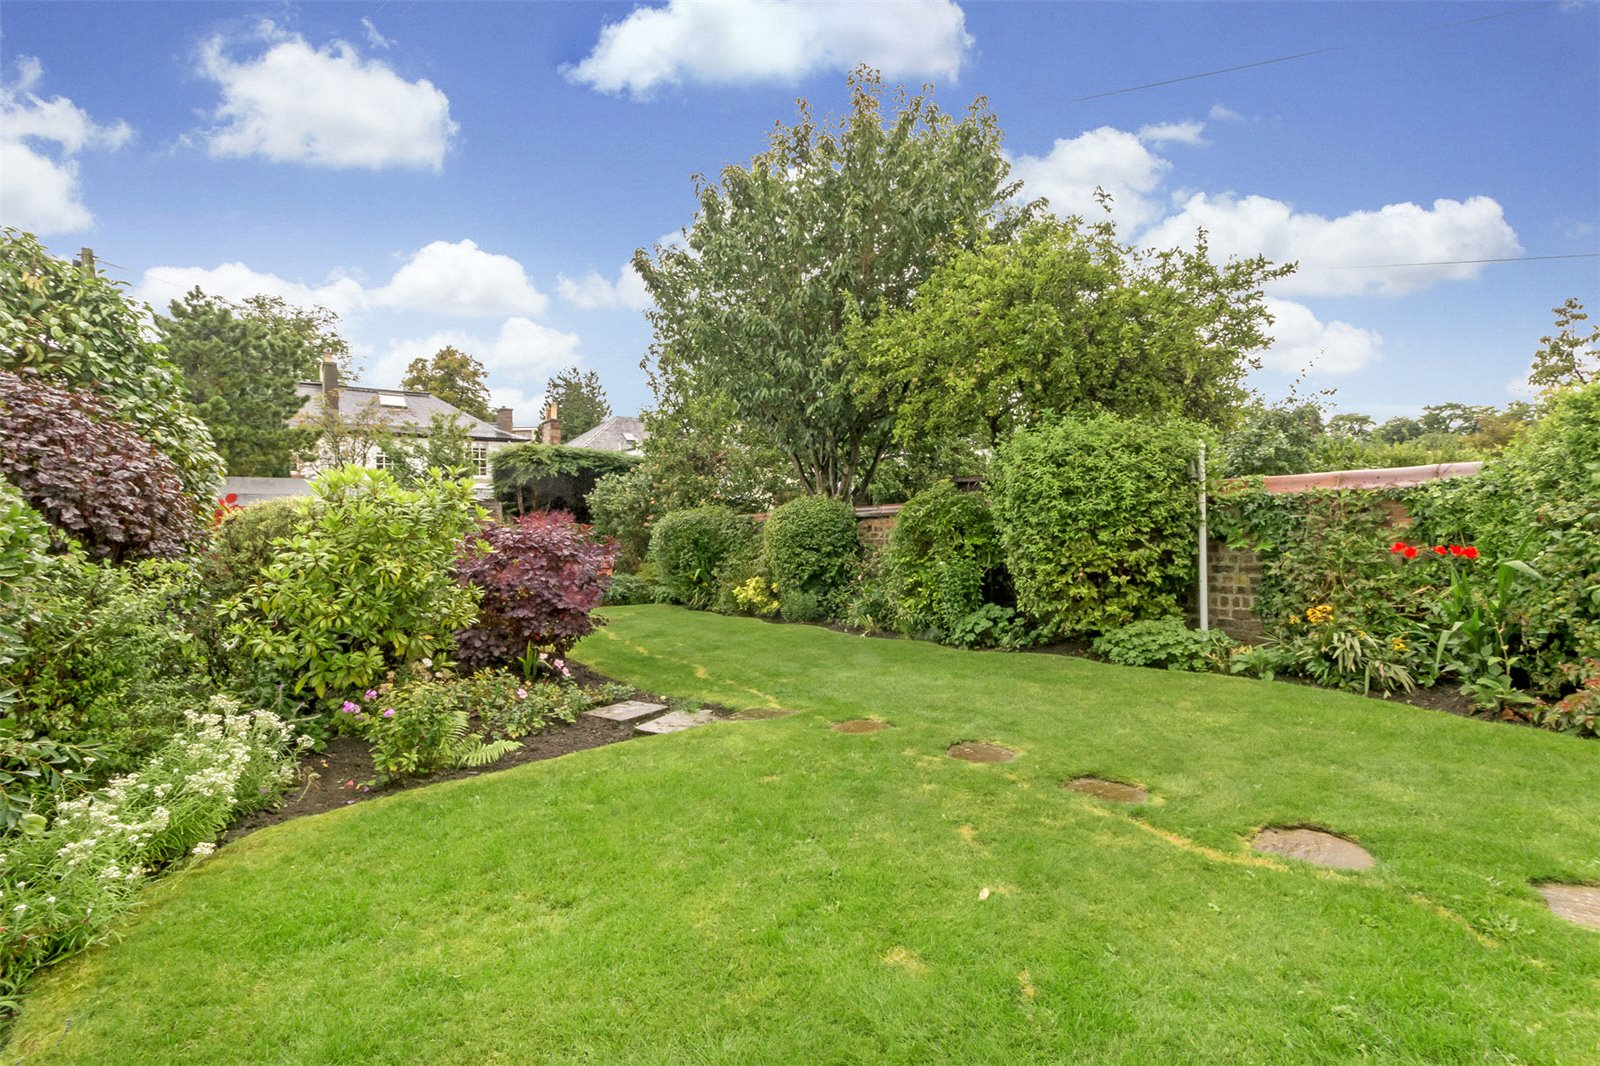 554 Queensferry Road garden